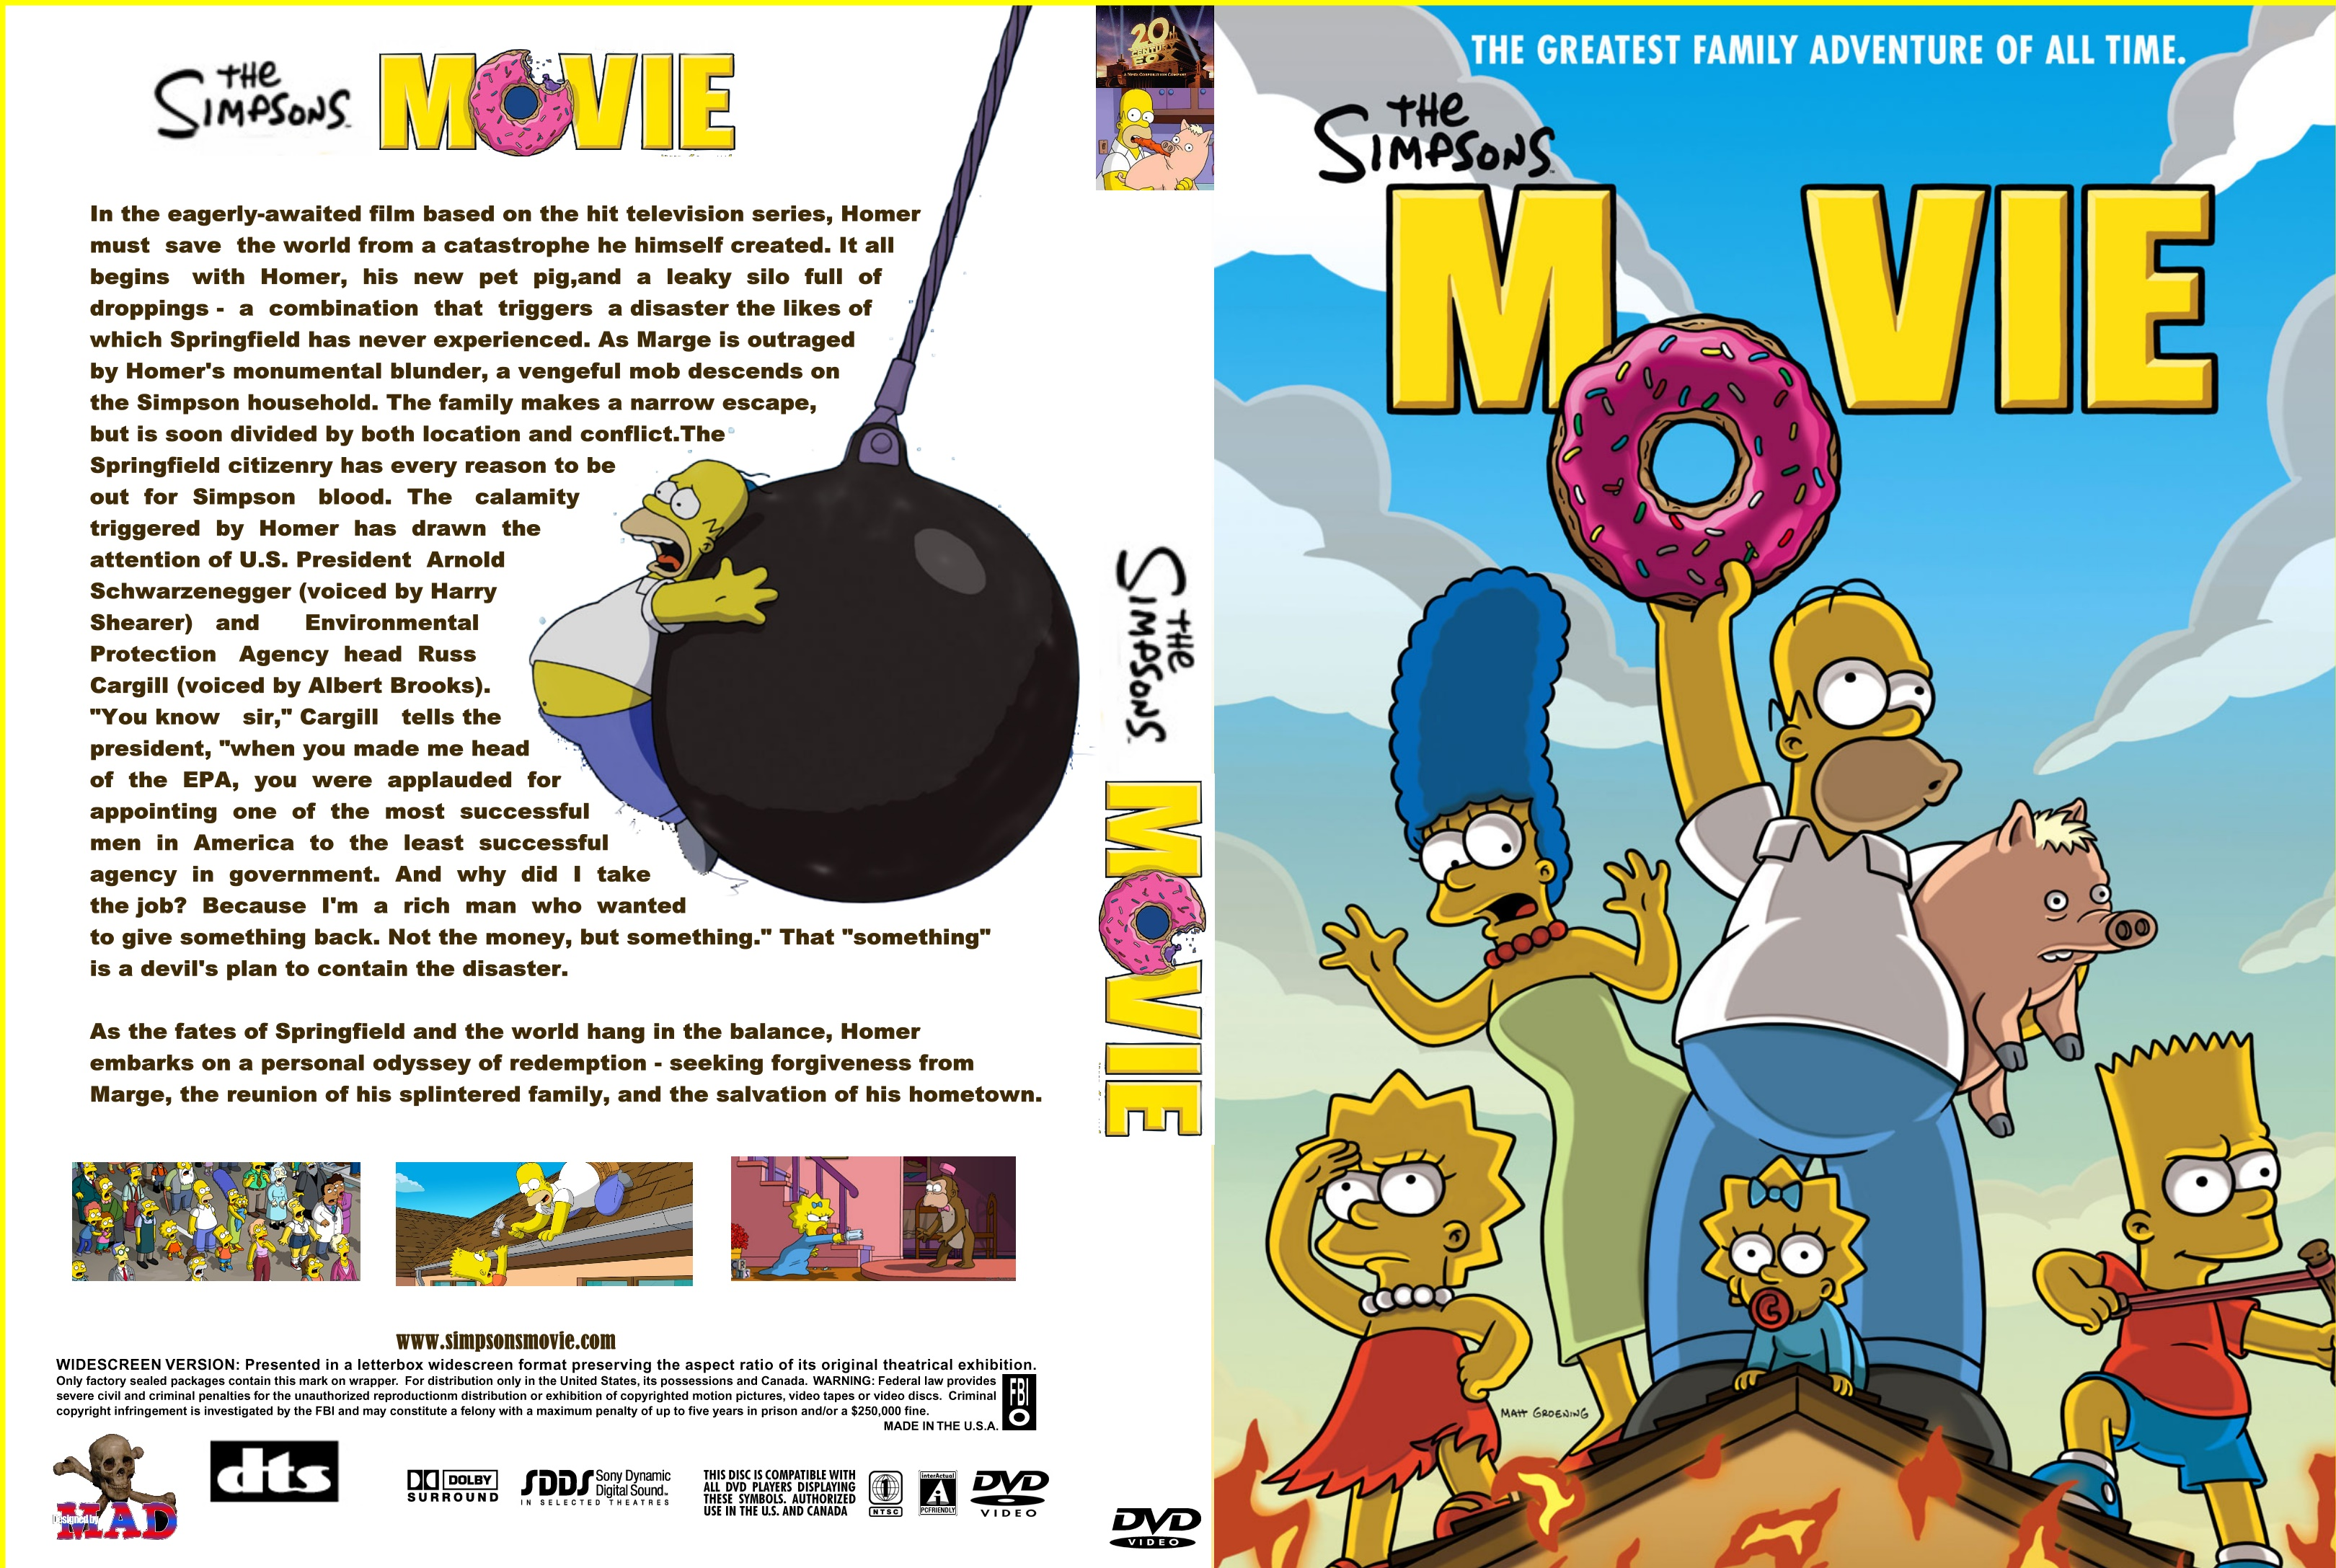 The Simpsons Movie Dvd Covers